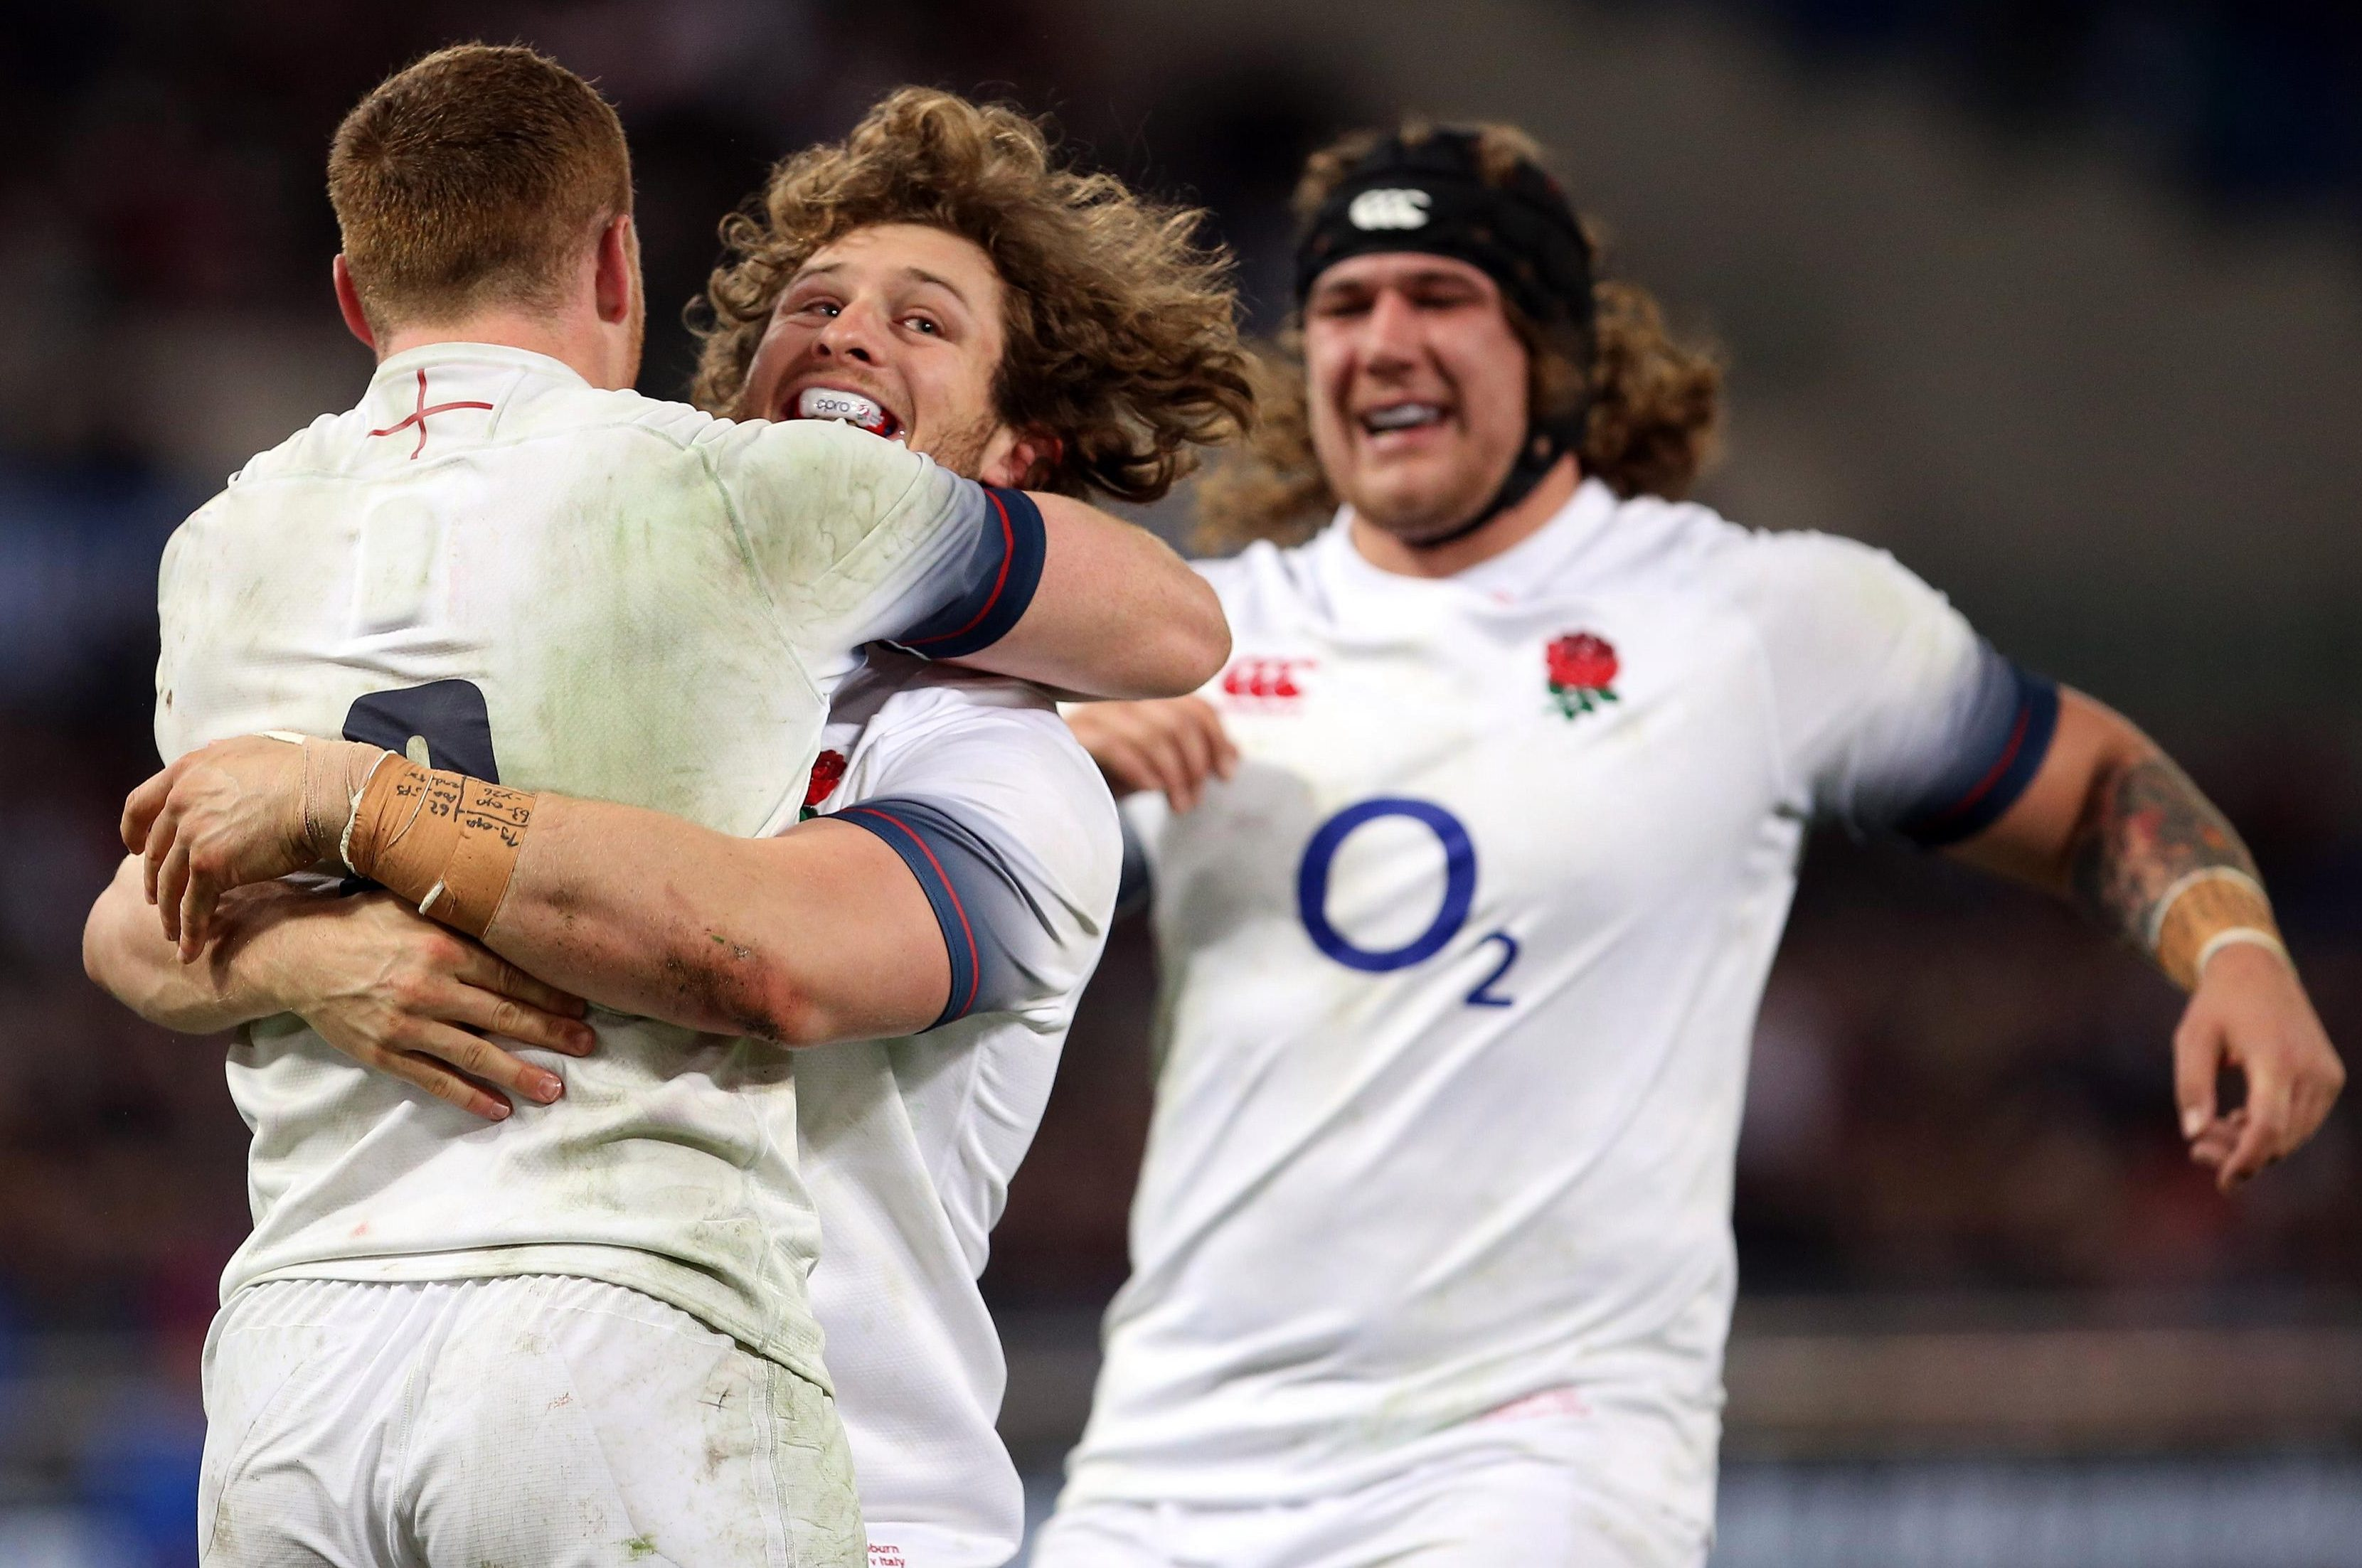 Sam Simmonds, Alec Hepburn and Harry WIlliams celebrate after scoring a try against Italy